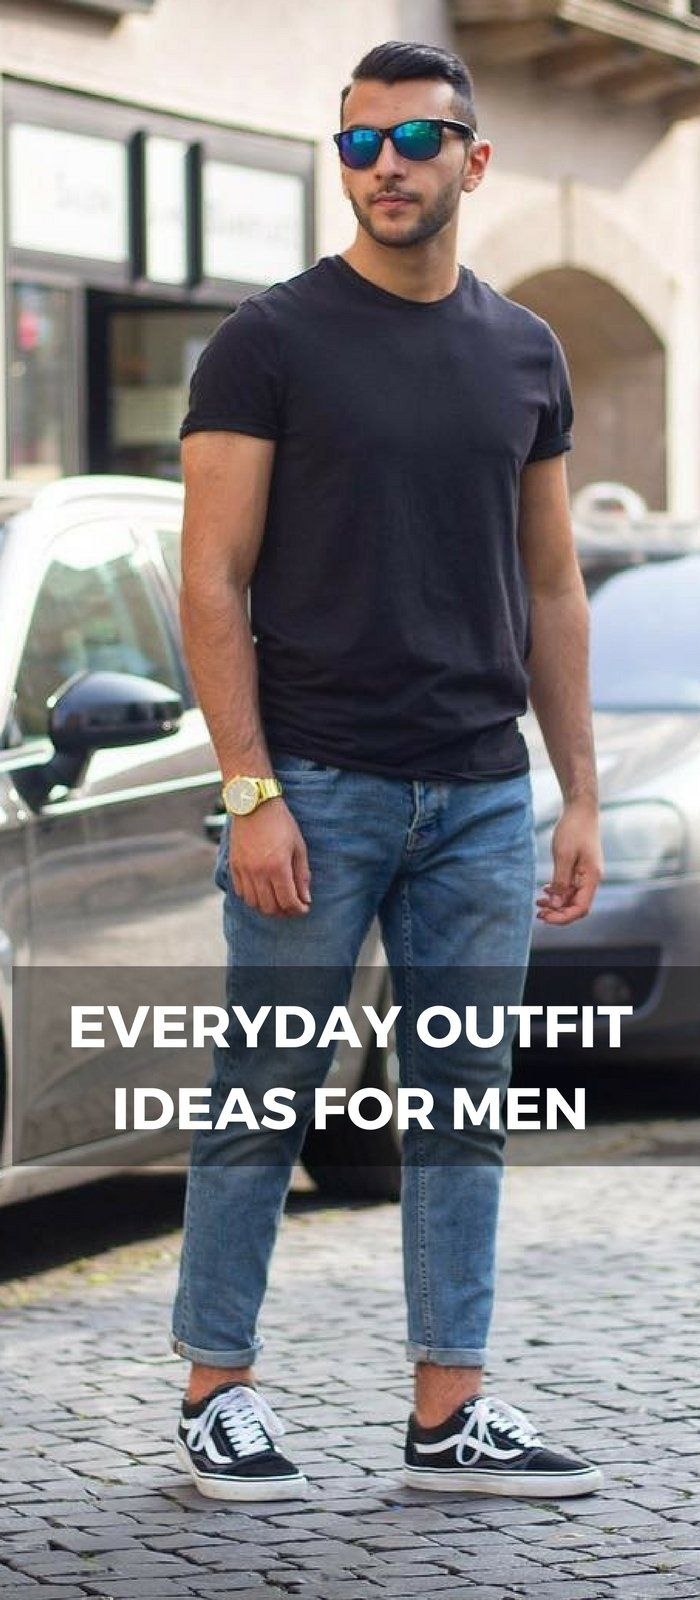 7 Everyday Outfits That Will Always Look Good – LIFESTYLE BY PS #tips #mensguides